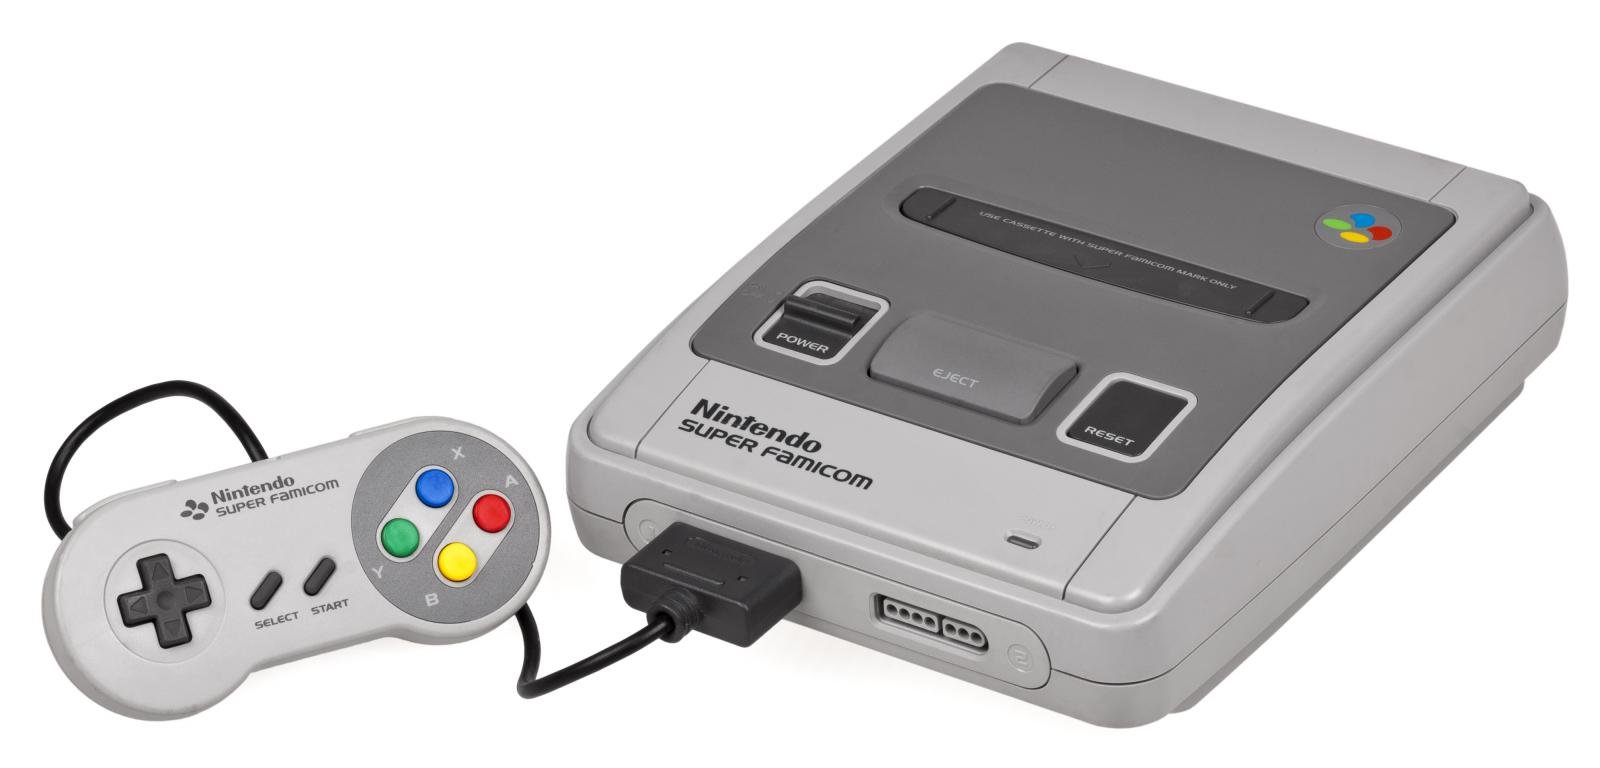 Awesome Super Nintendo free wallpaper ID:246767 for hd 1600x768 computer